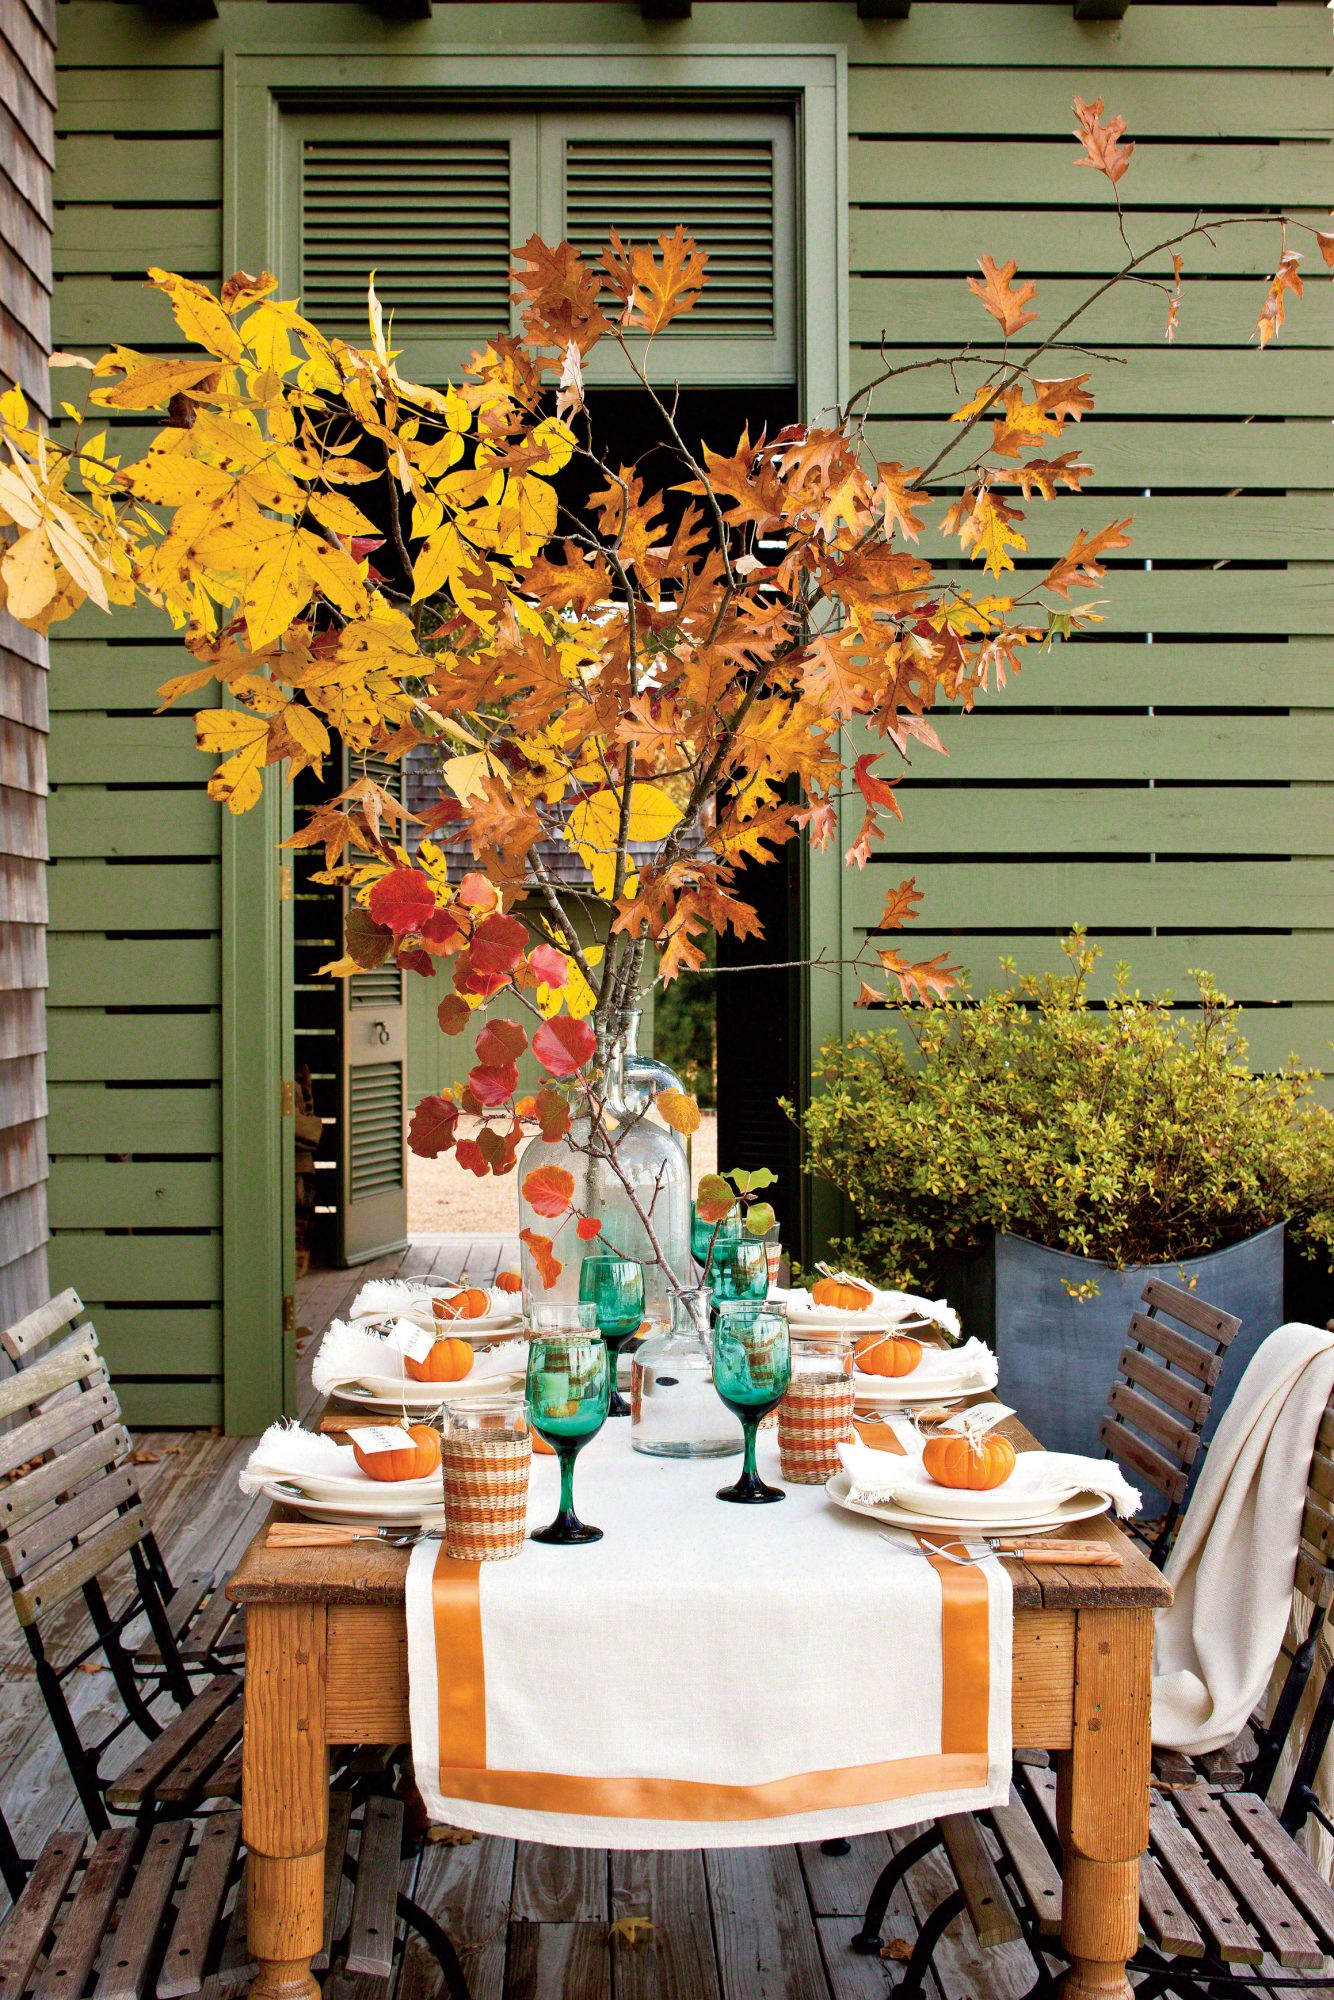 Fall Table Setting with Pumpkins and Fall Leaves by Lindsey Ellis Beatty